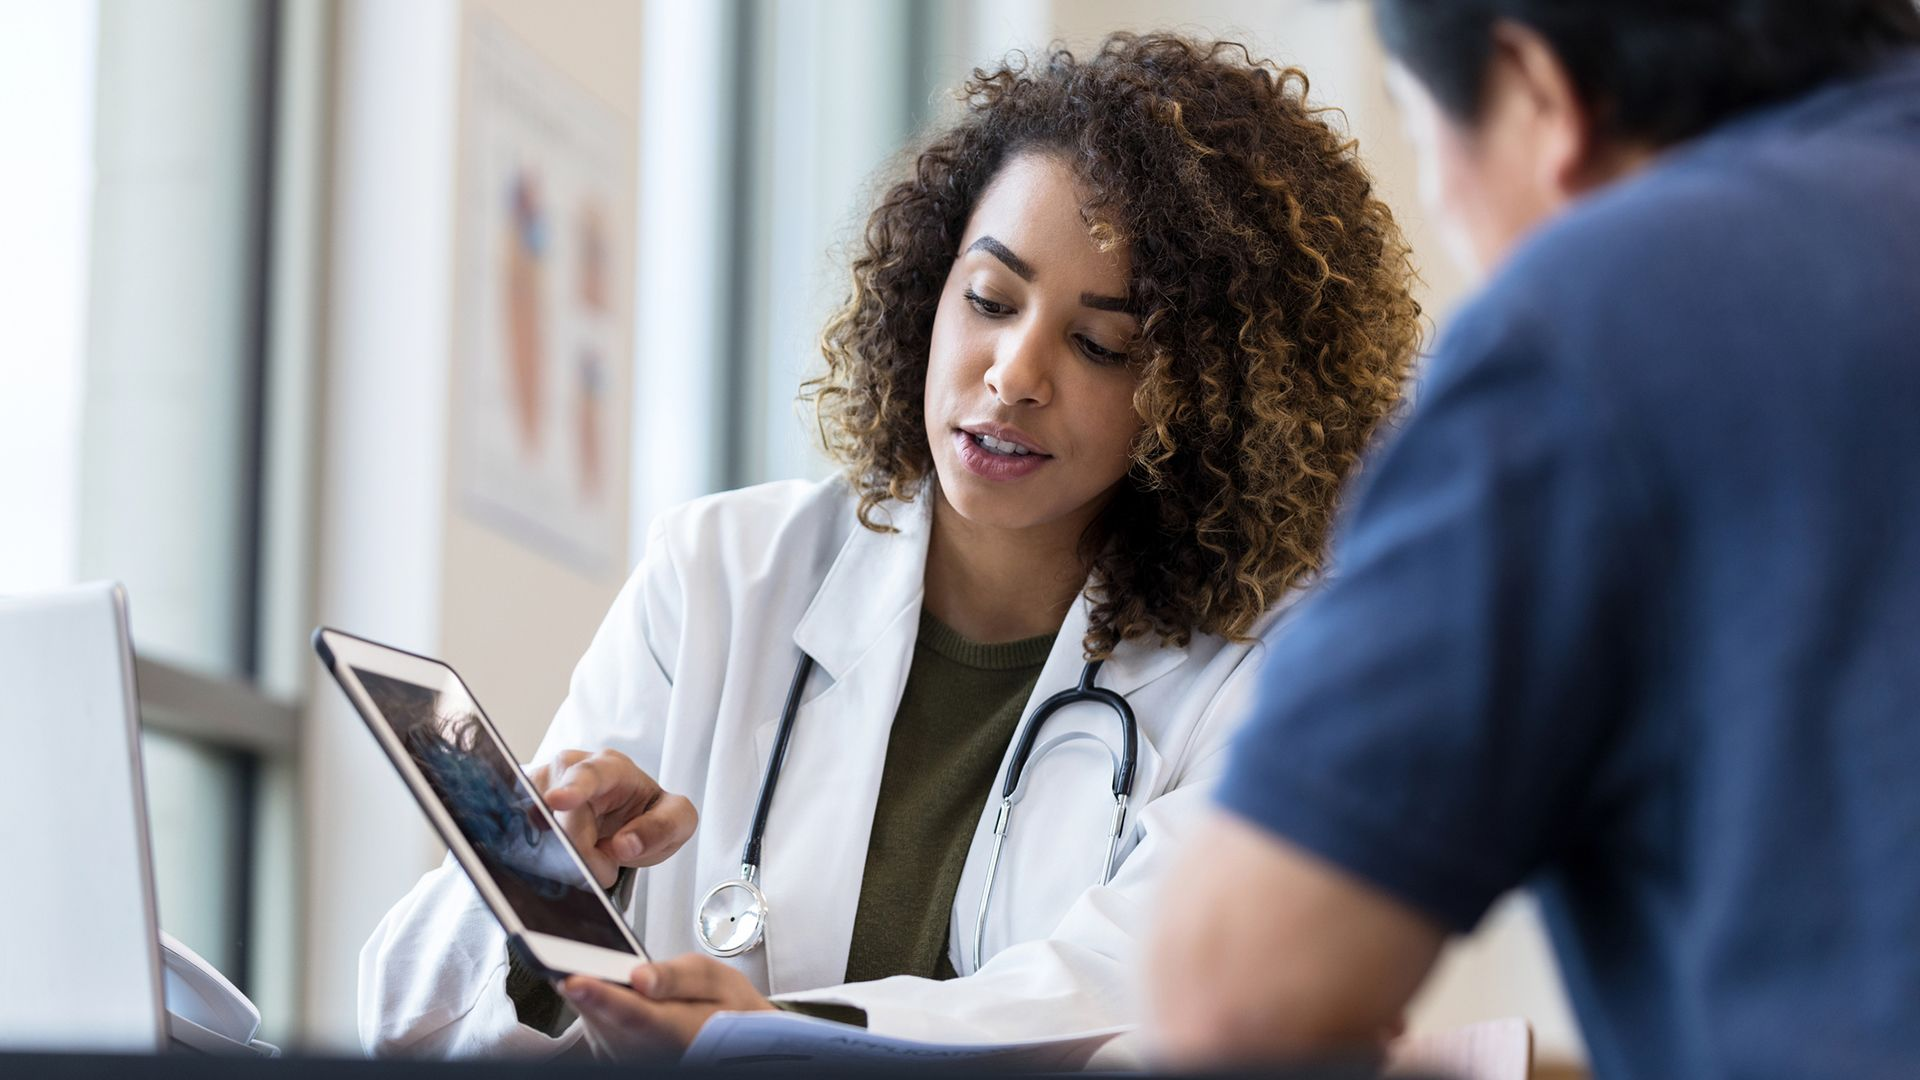 Is Surgery for Crohn's or Colitis Right for You?